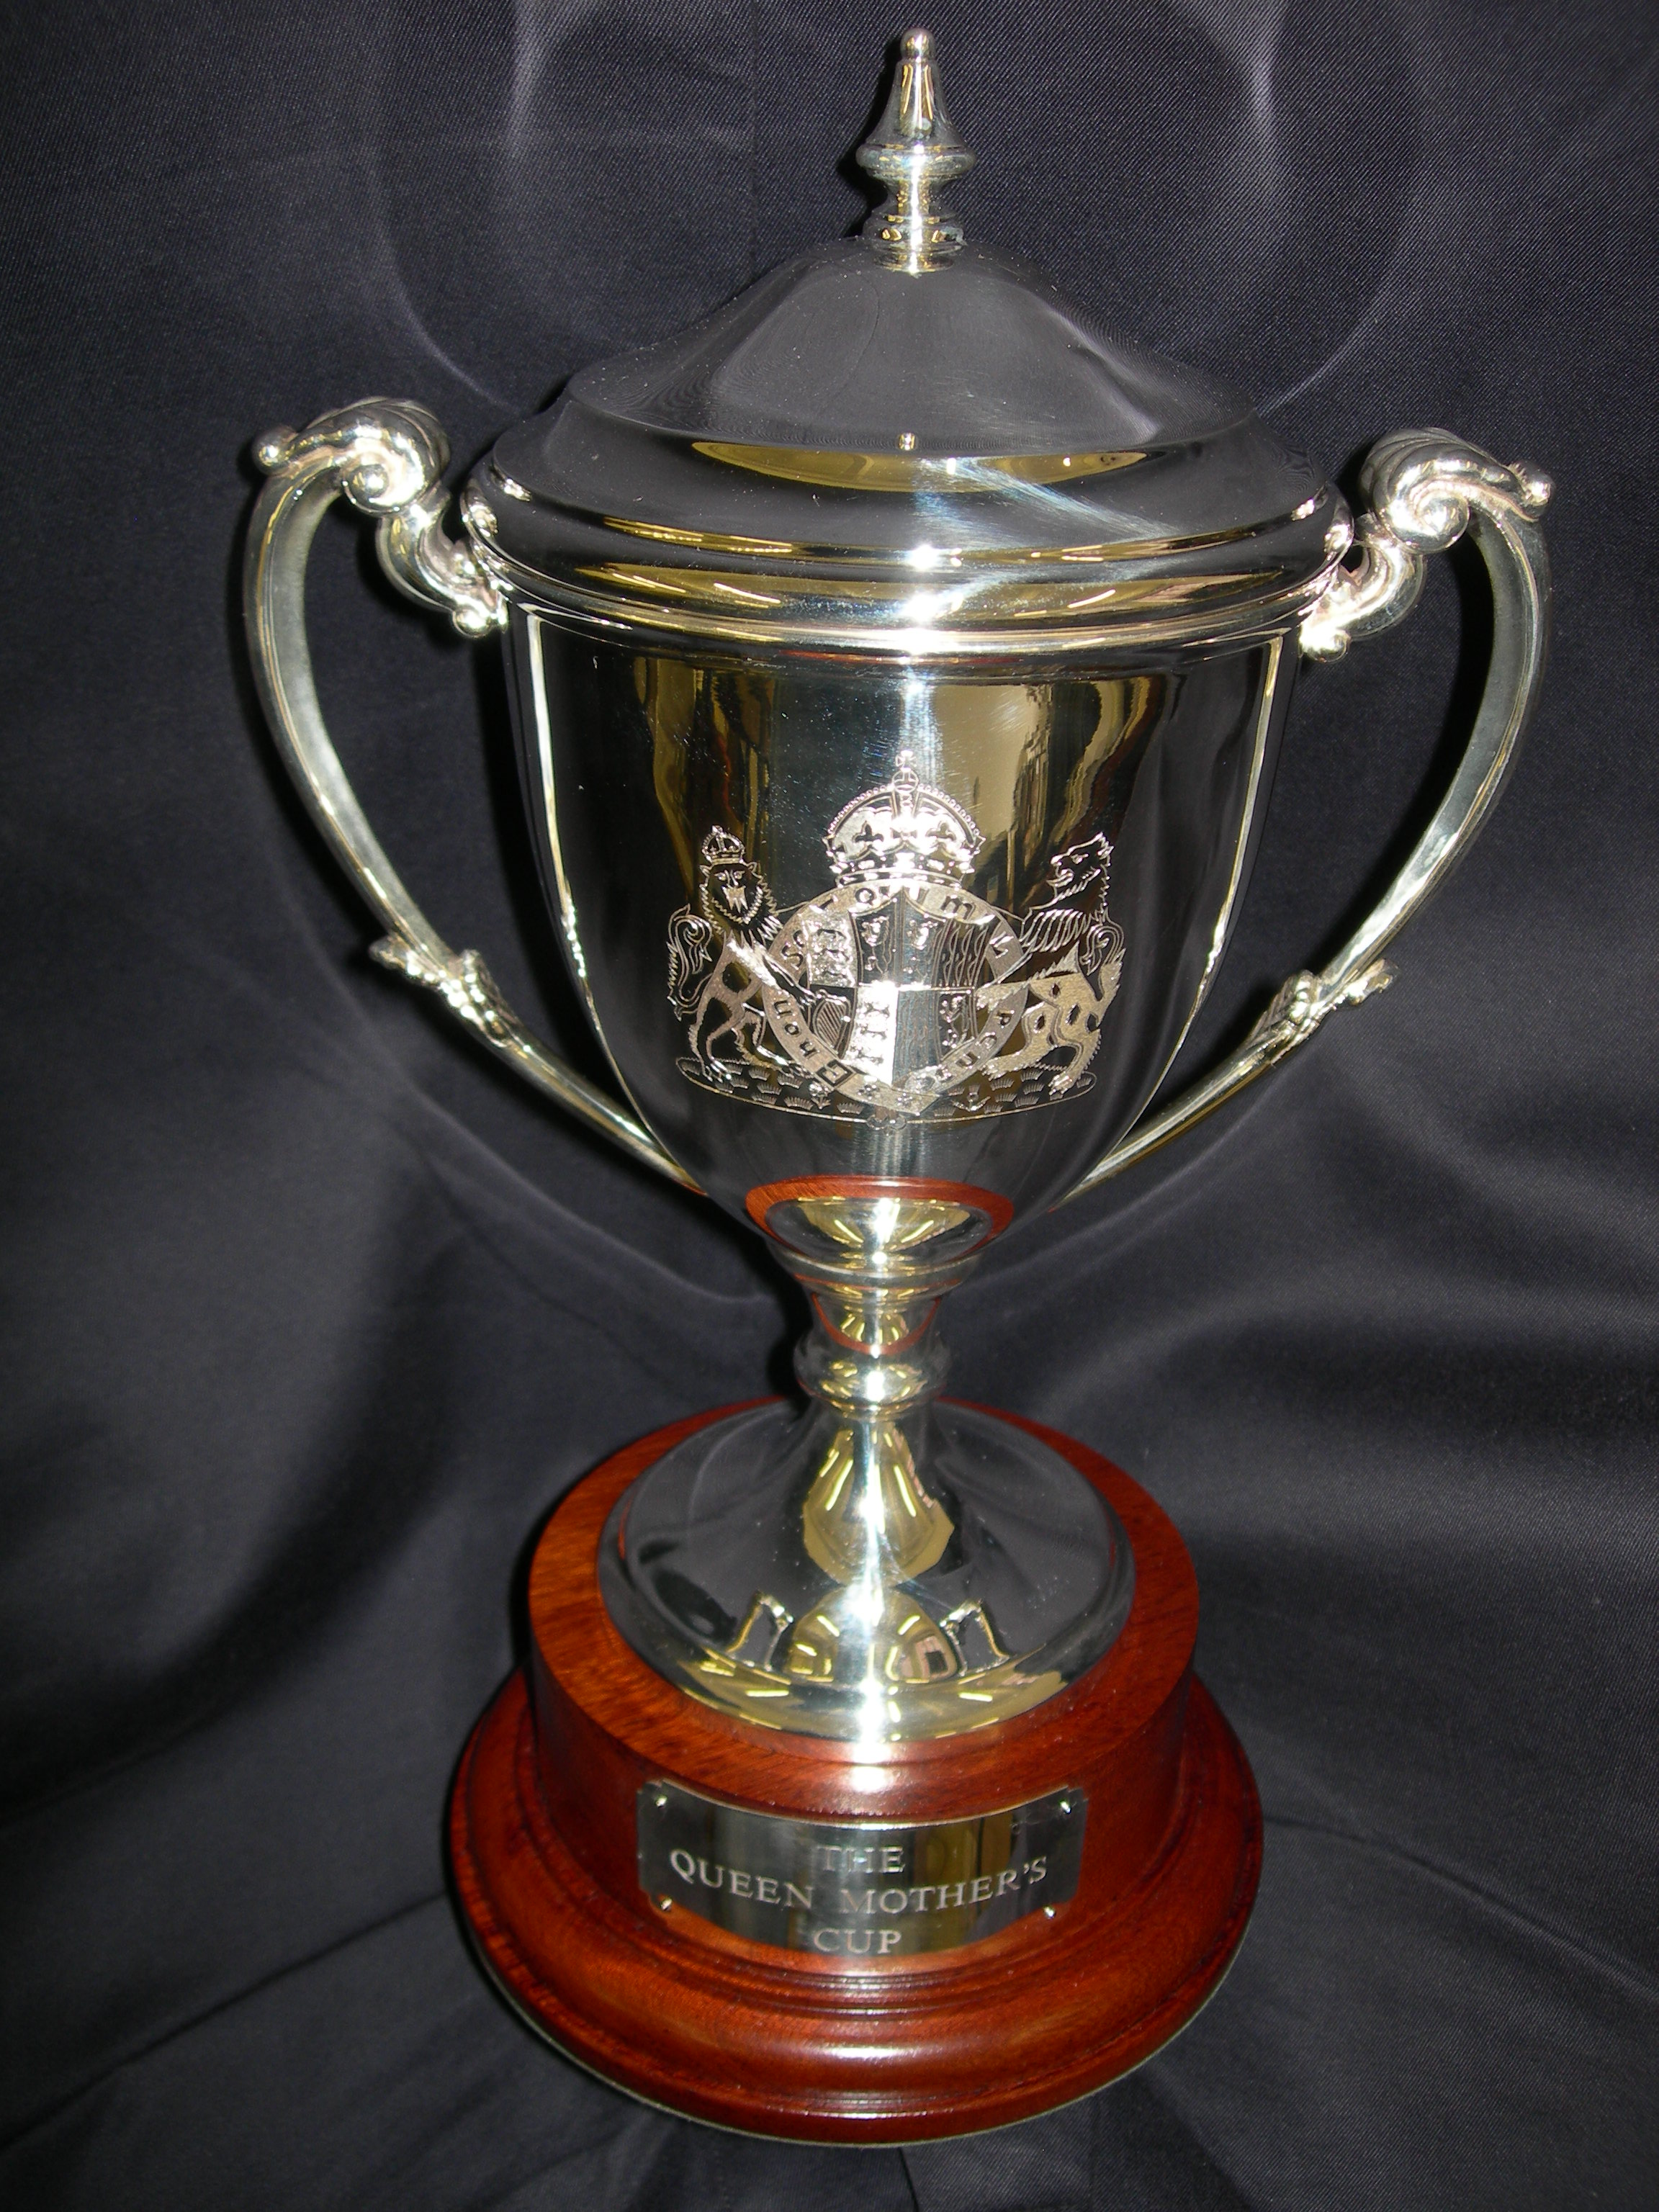 The Queen Mother Cup